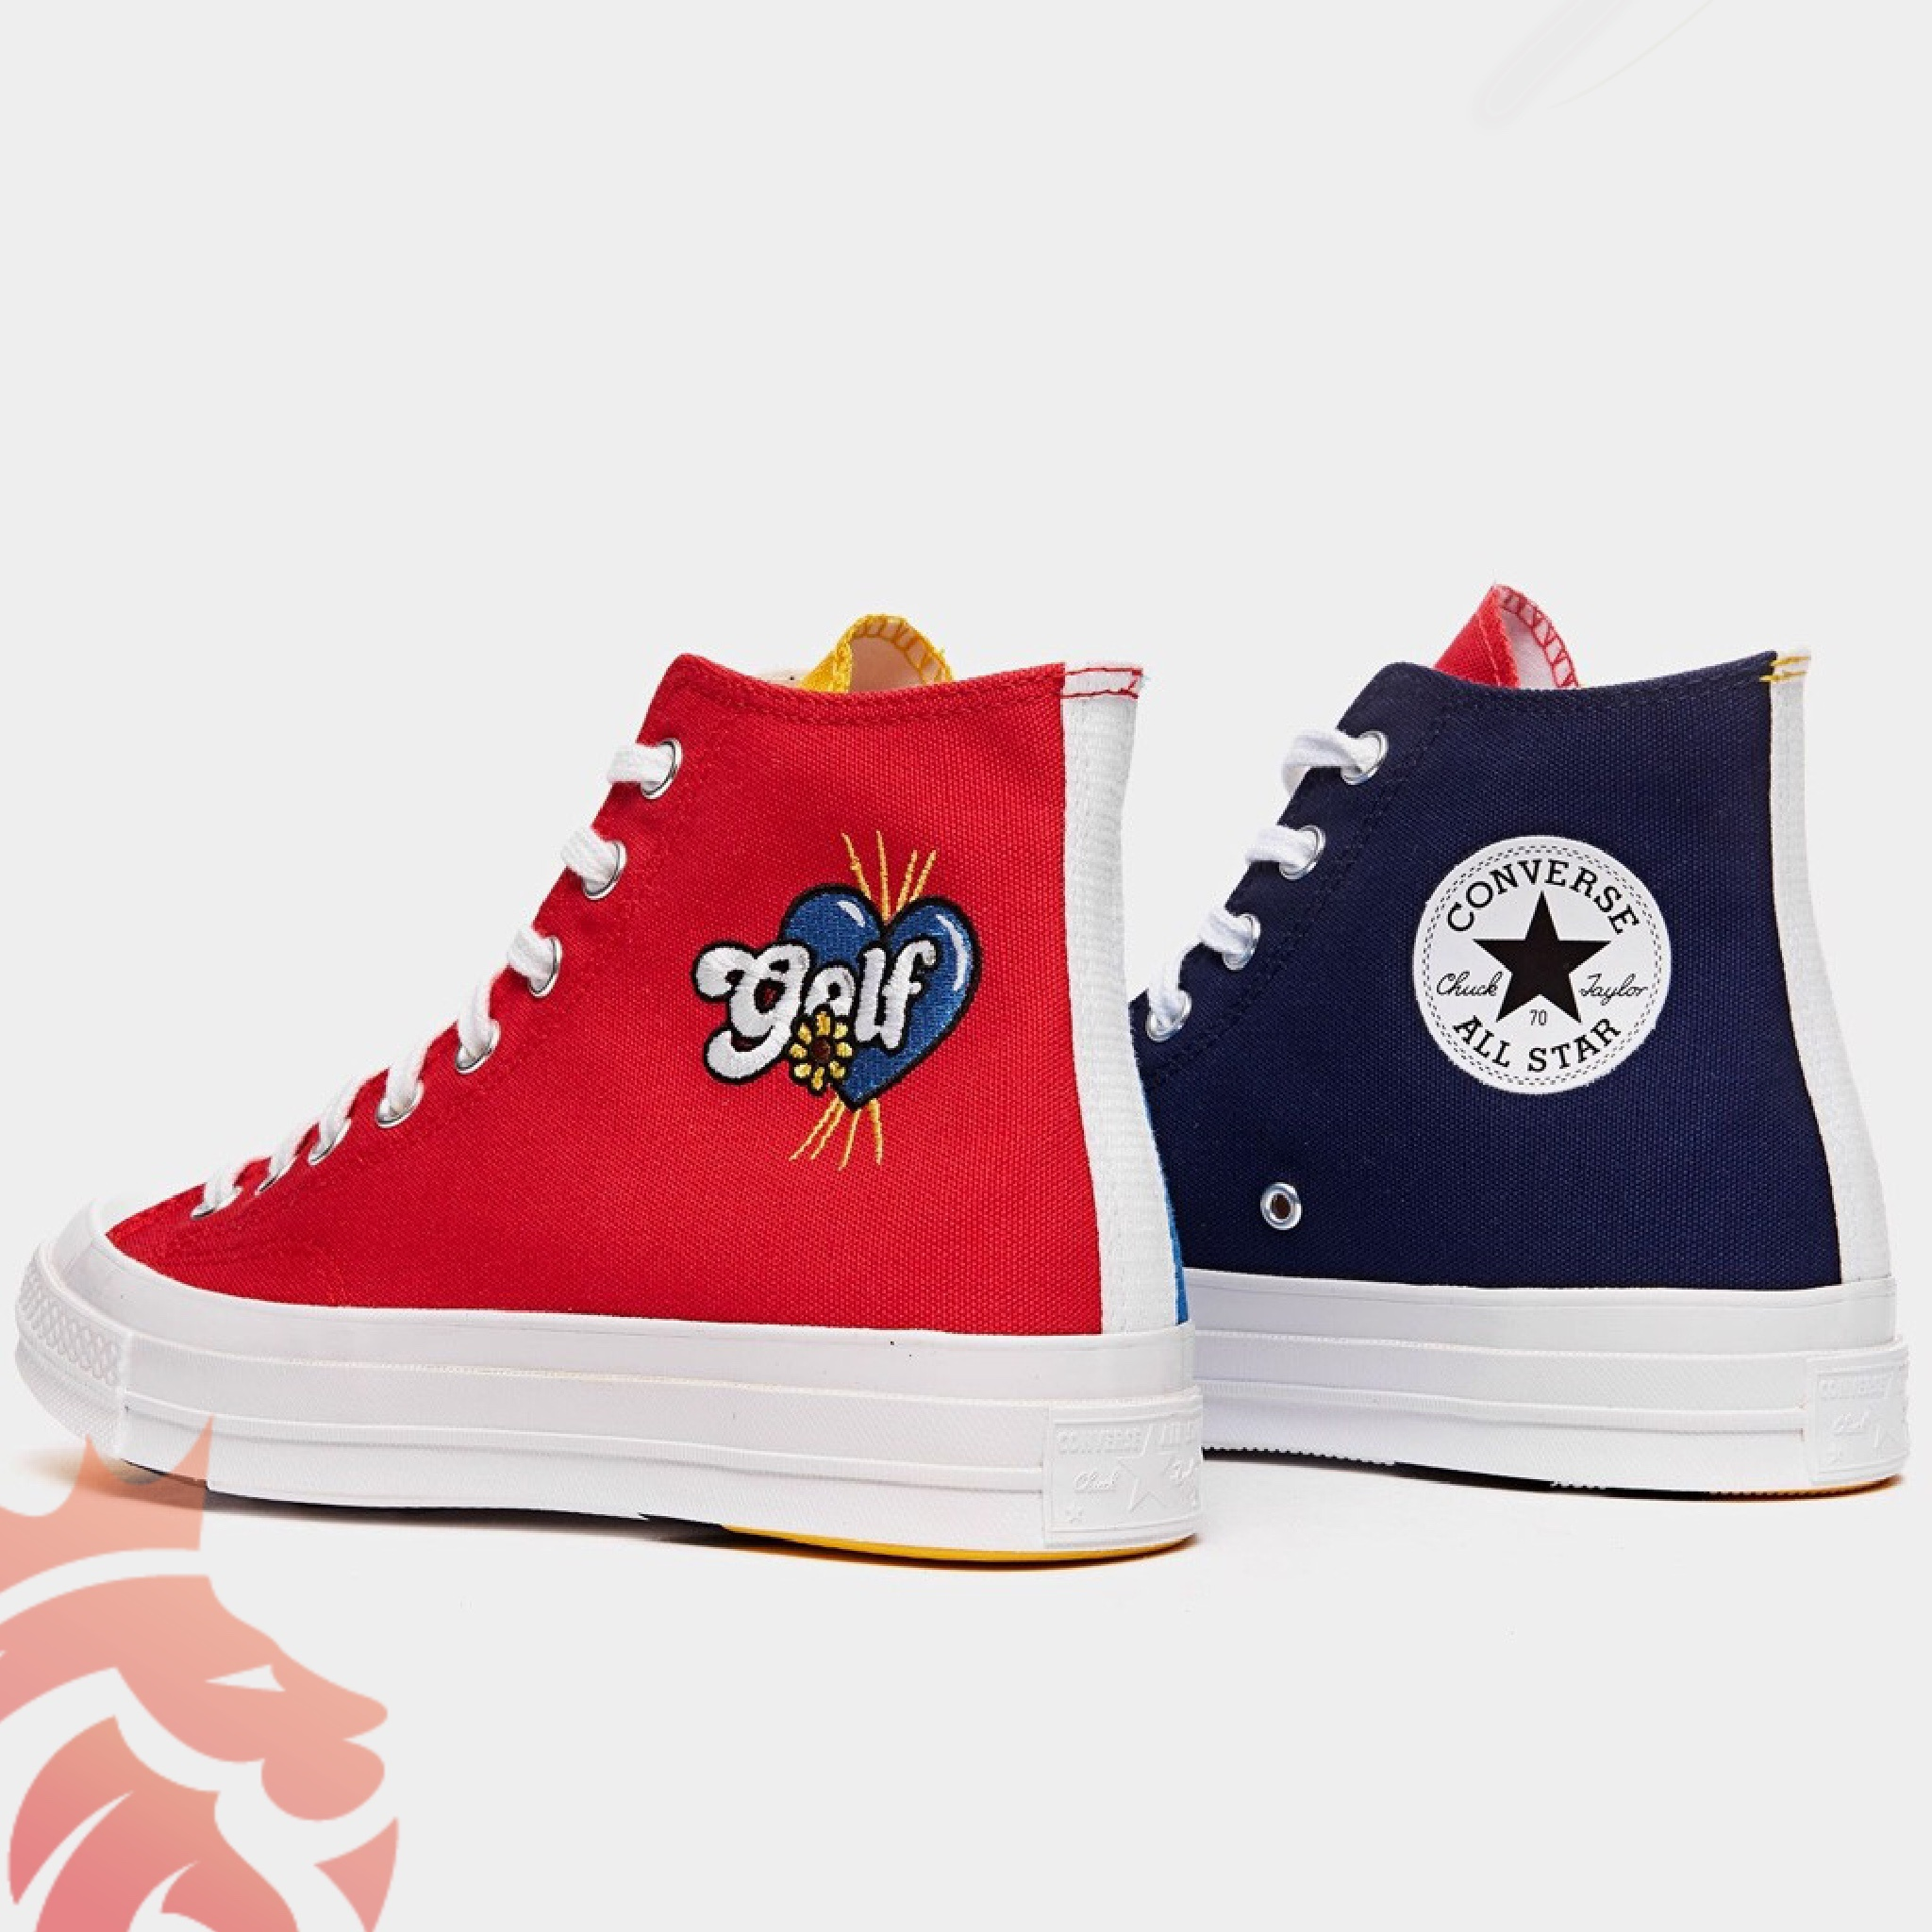 GOLF WANG x Converse Chuck 70 Hi Tri-Panel 169910C Blue/Yellow/Red/Navy/White